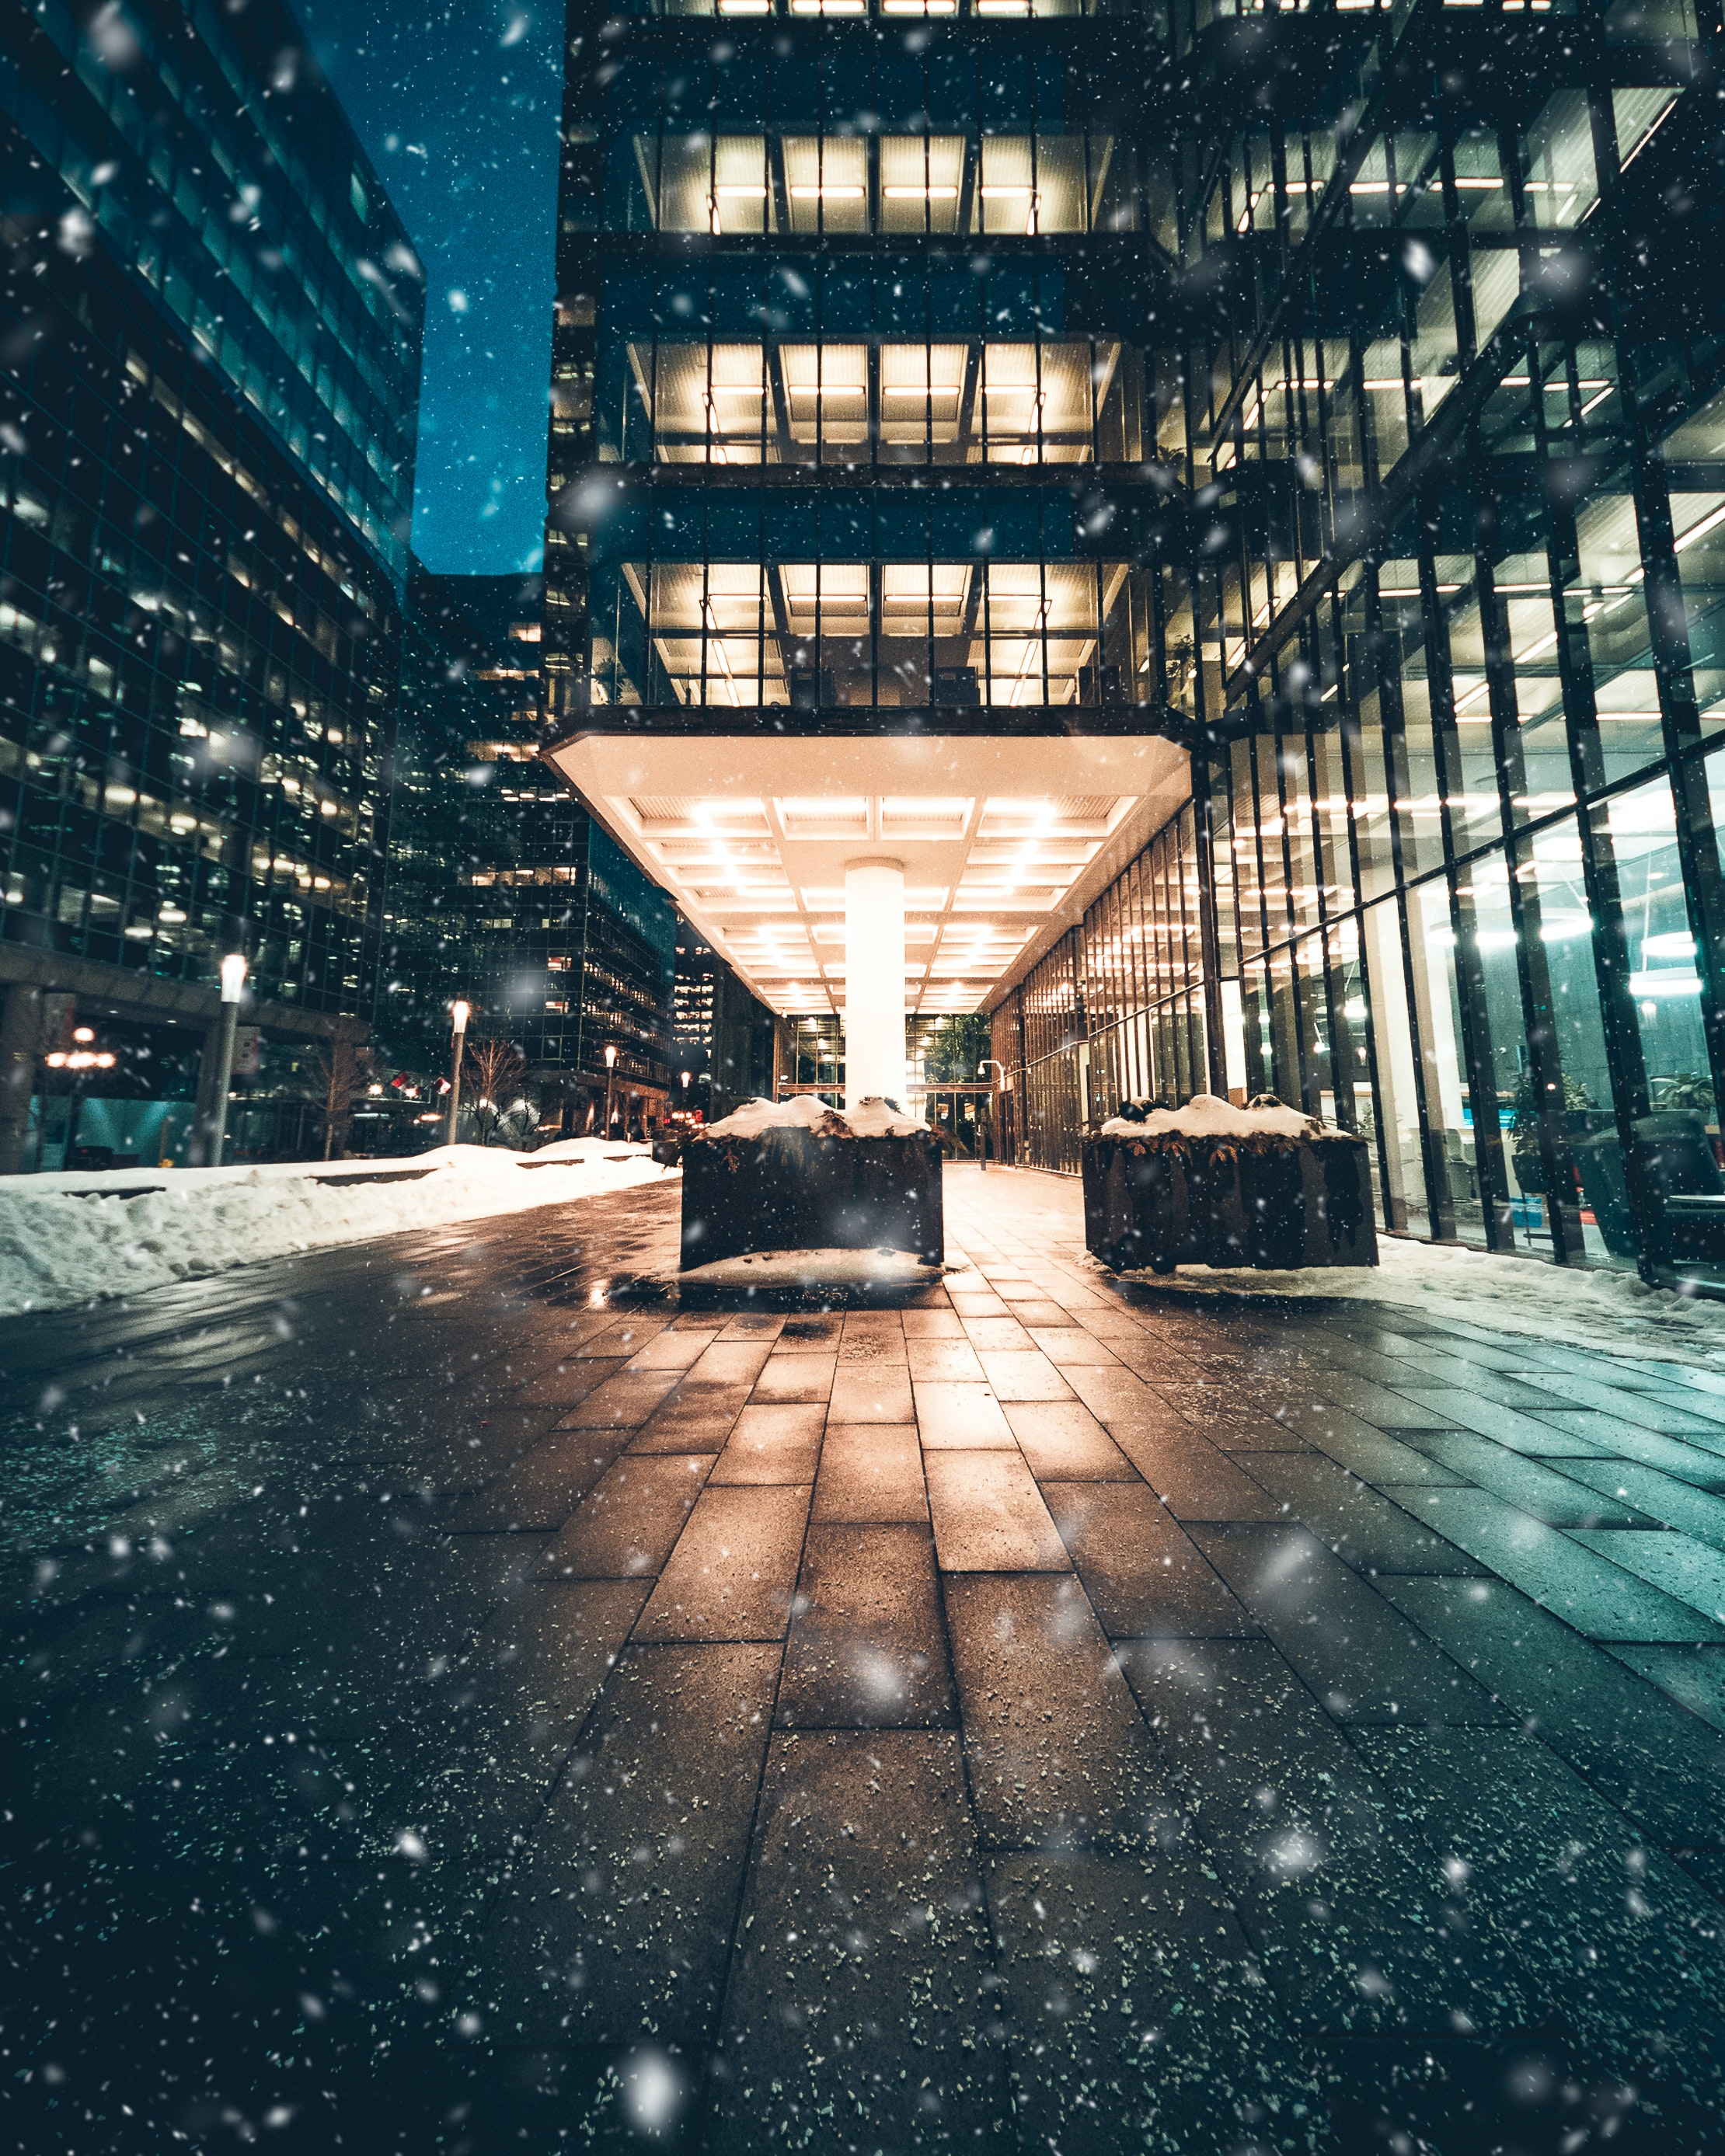 snow street during night time